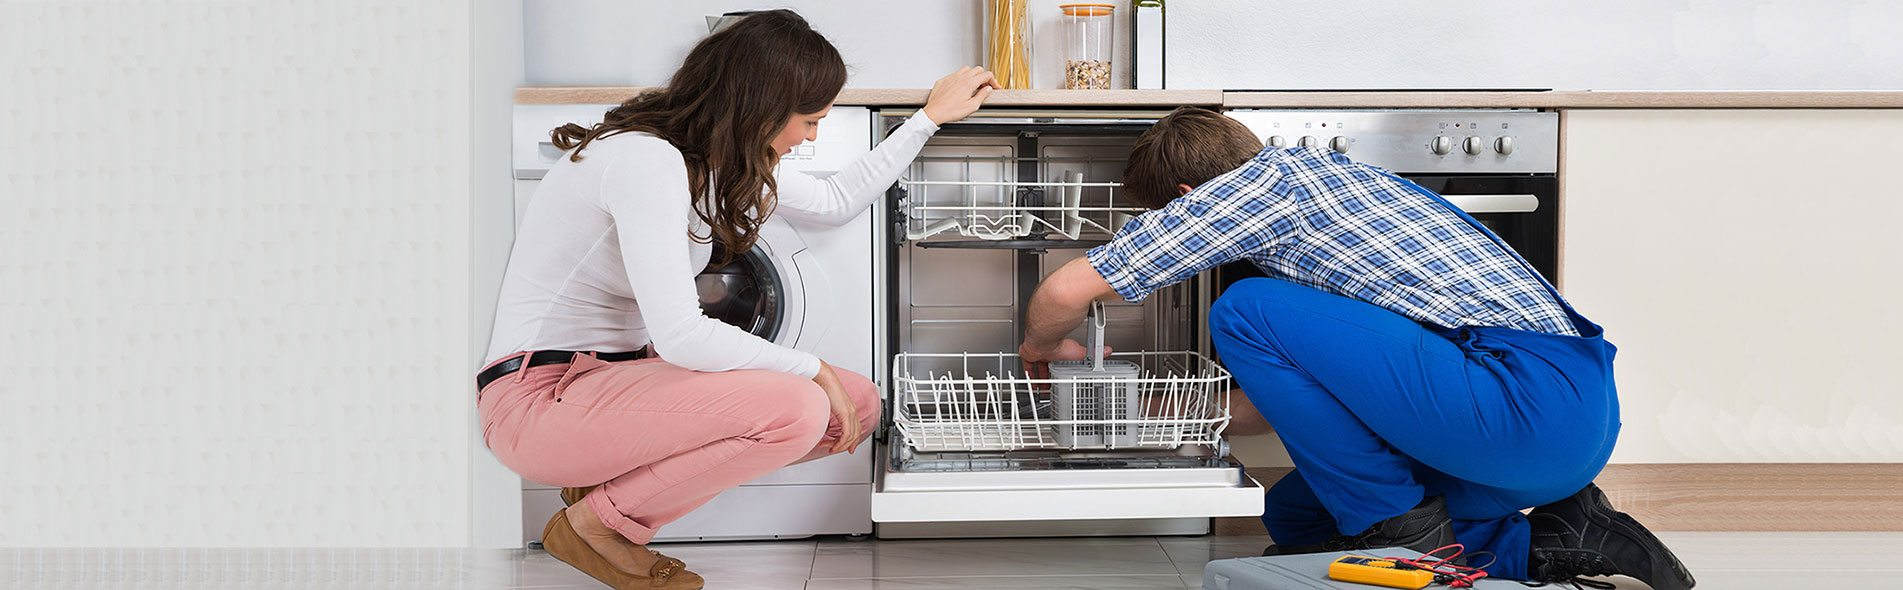 repairman fixing dishwasher. Dishwasher repair and maintenance